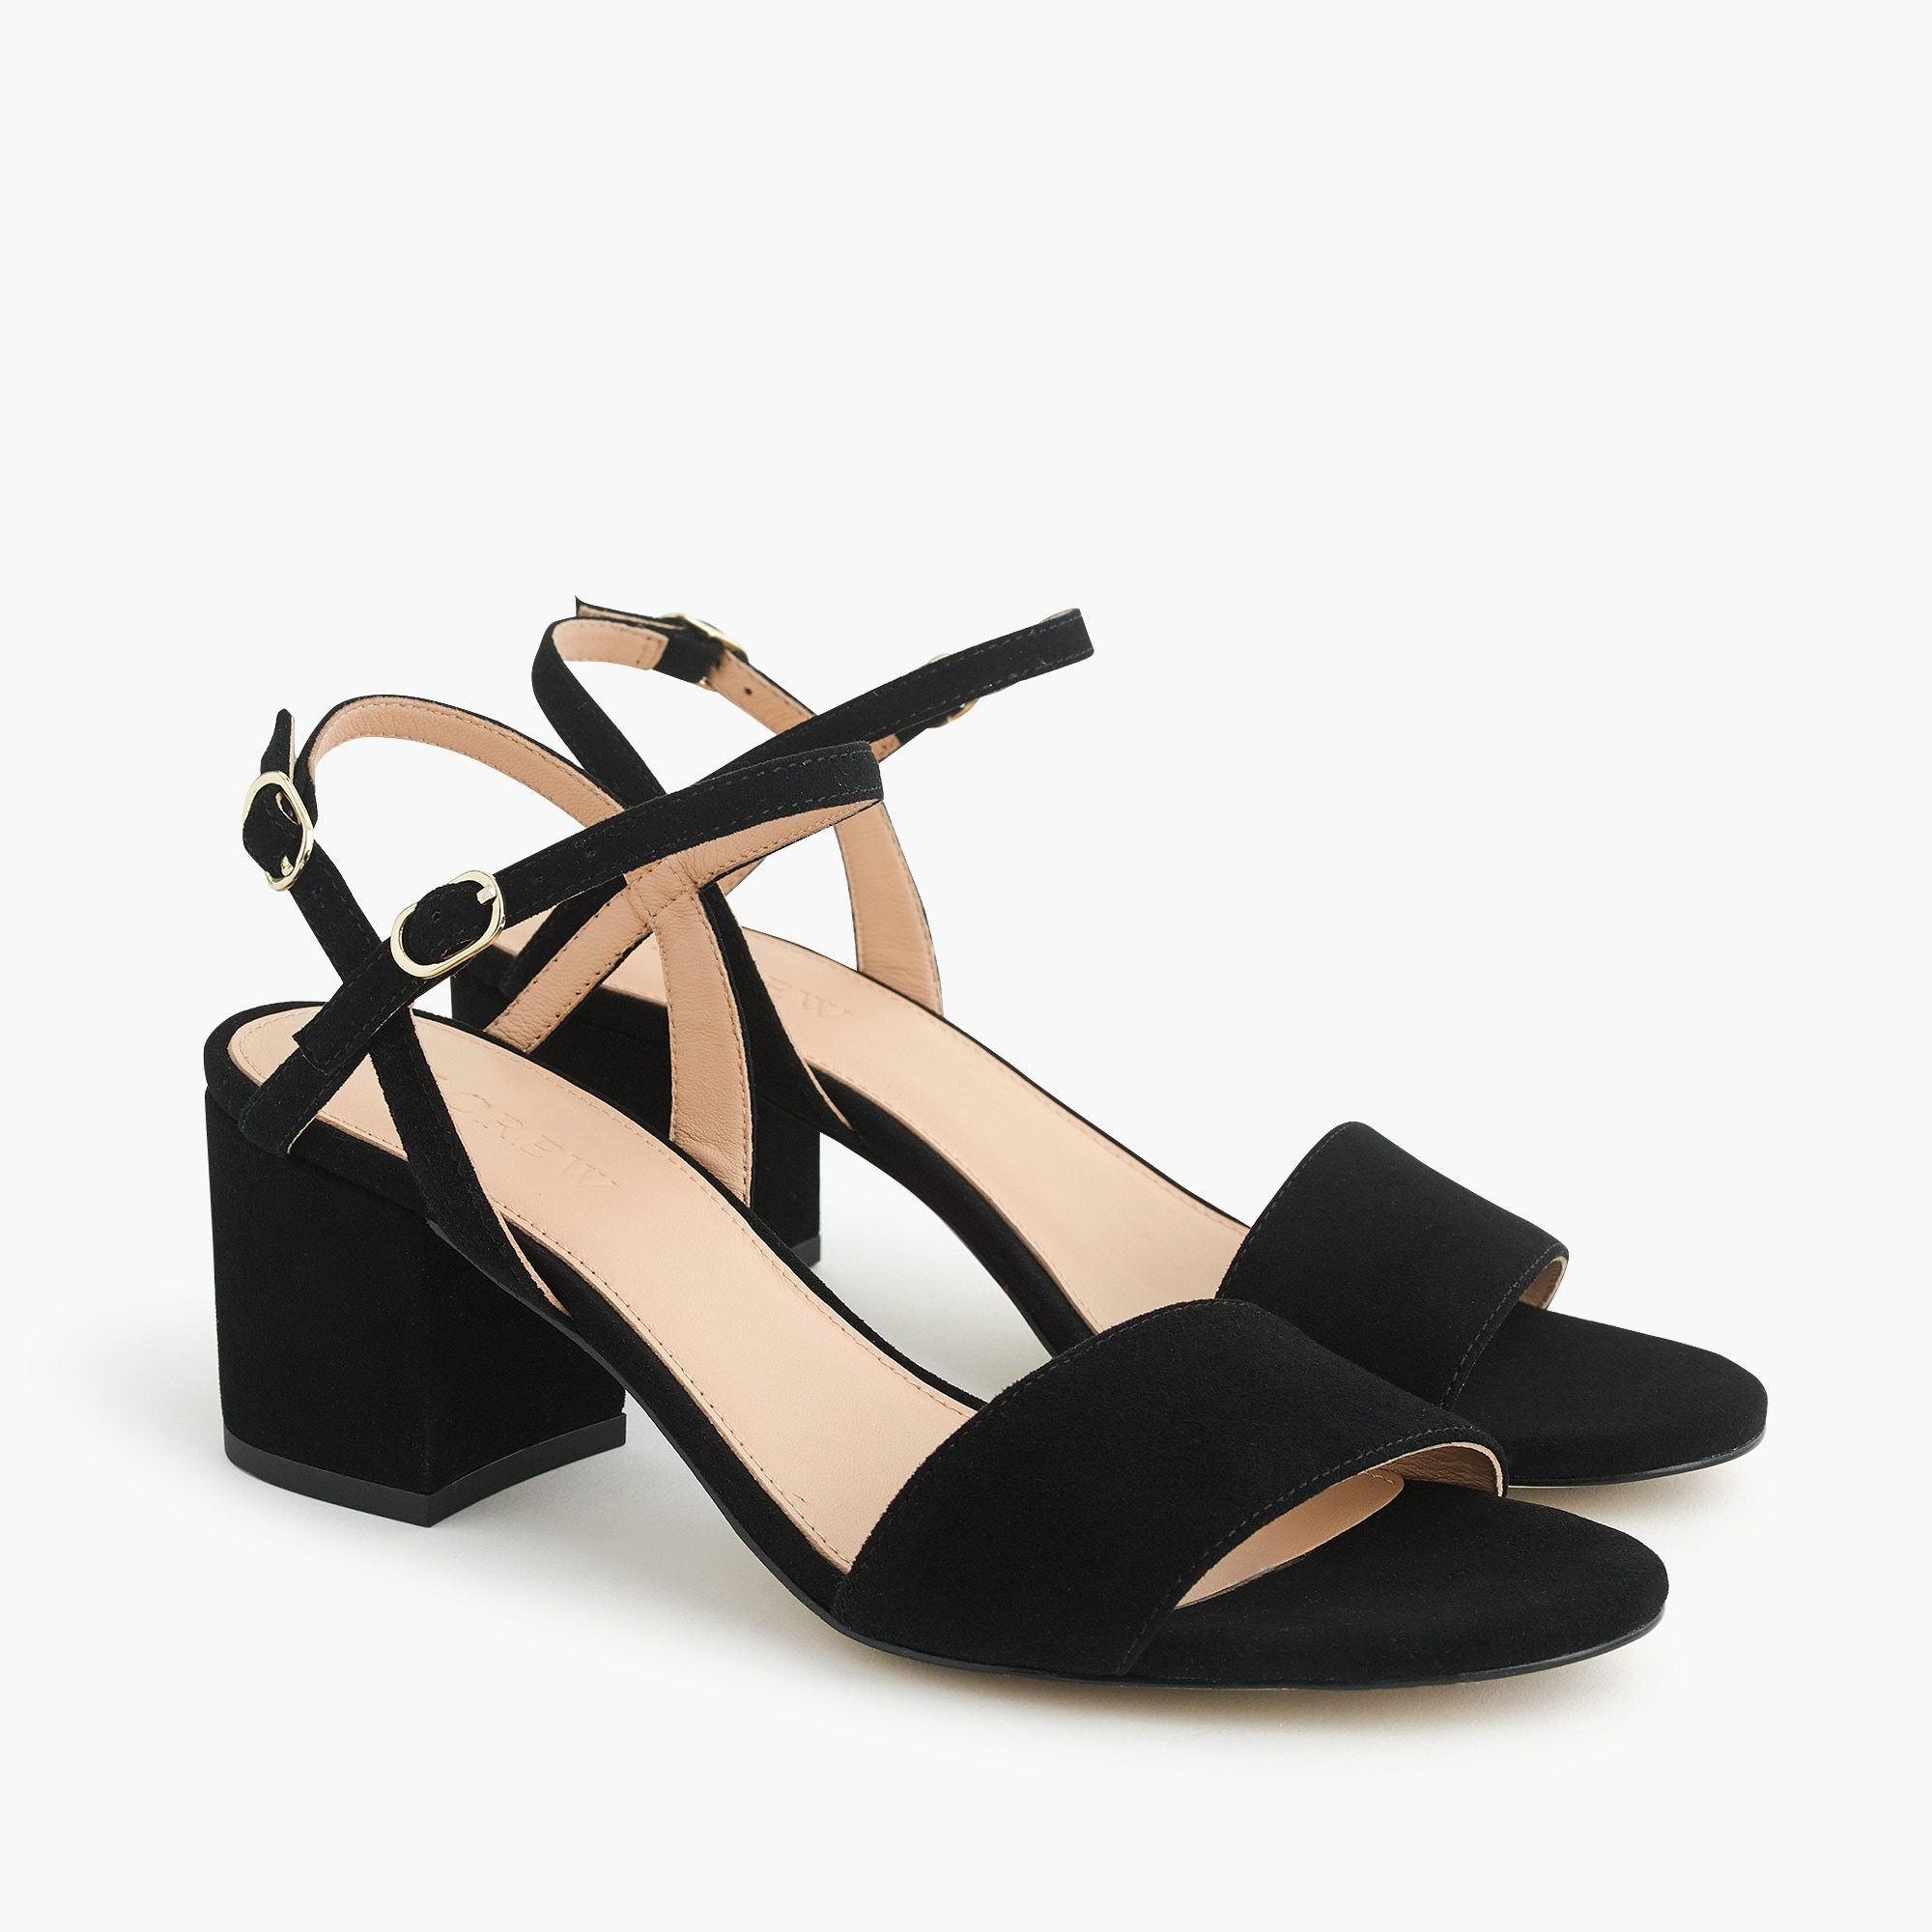 Strappy block-heel sandals (60mm) in suede women shoes c